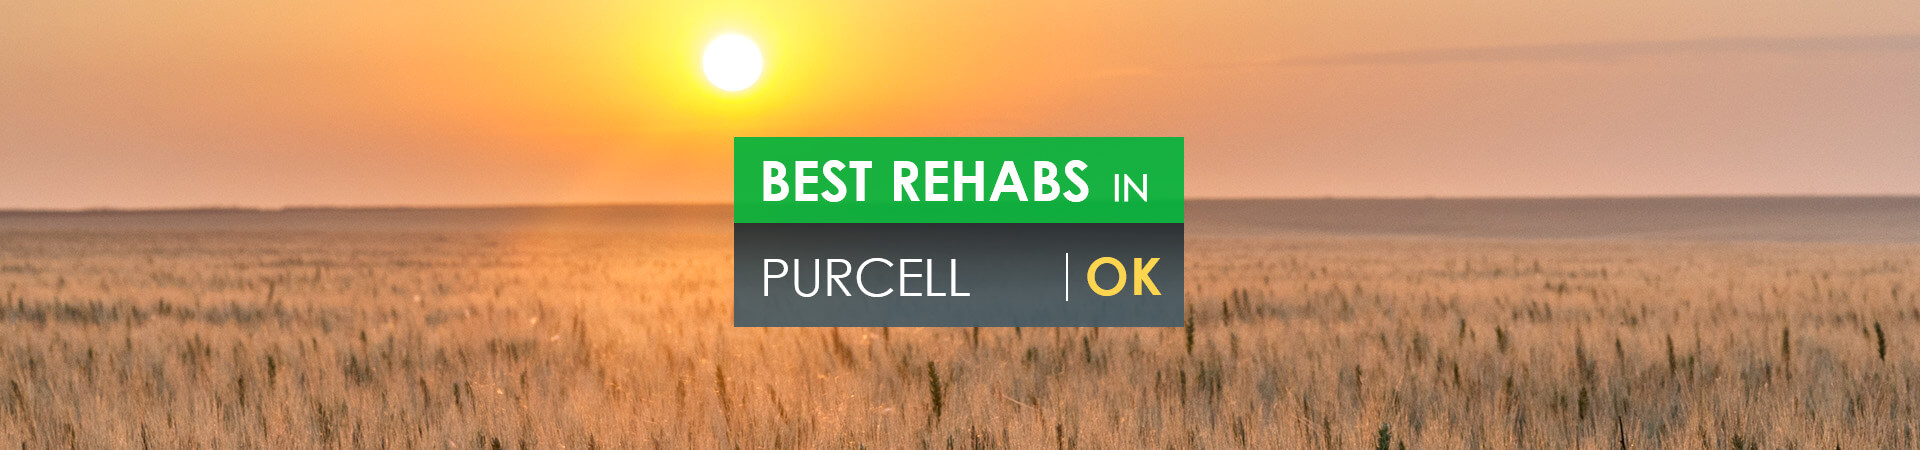 Best rehabs in Purcell, OK